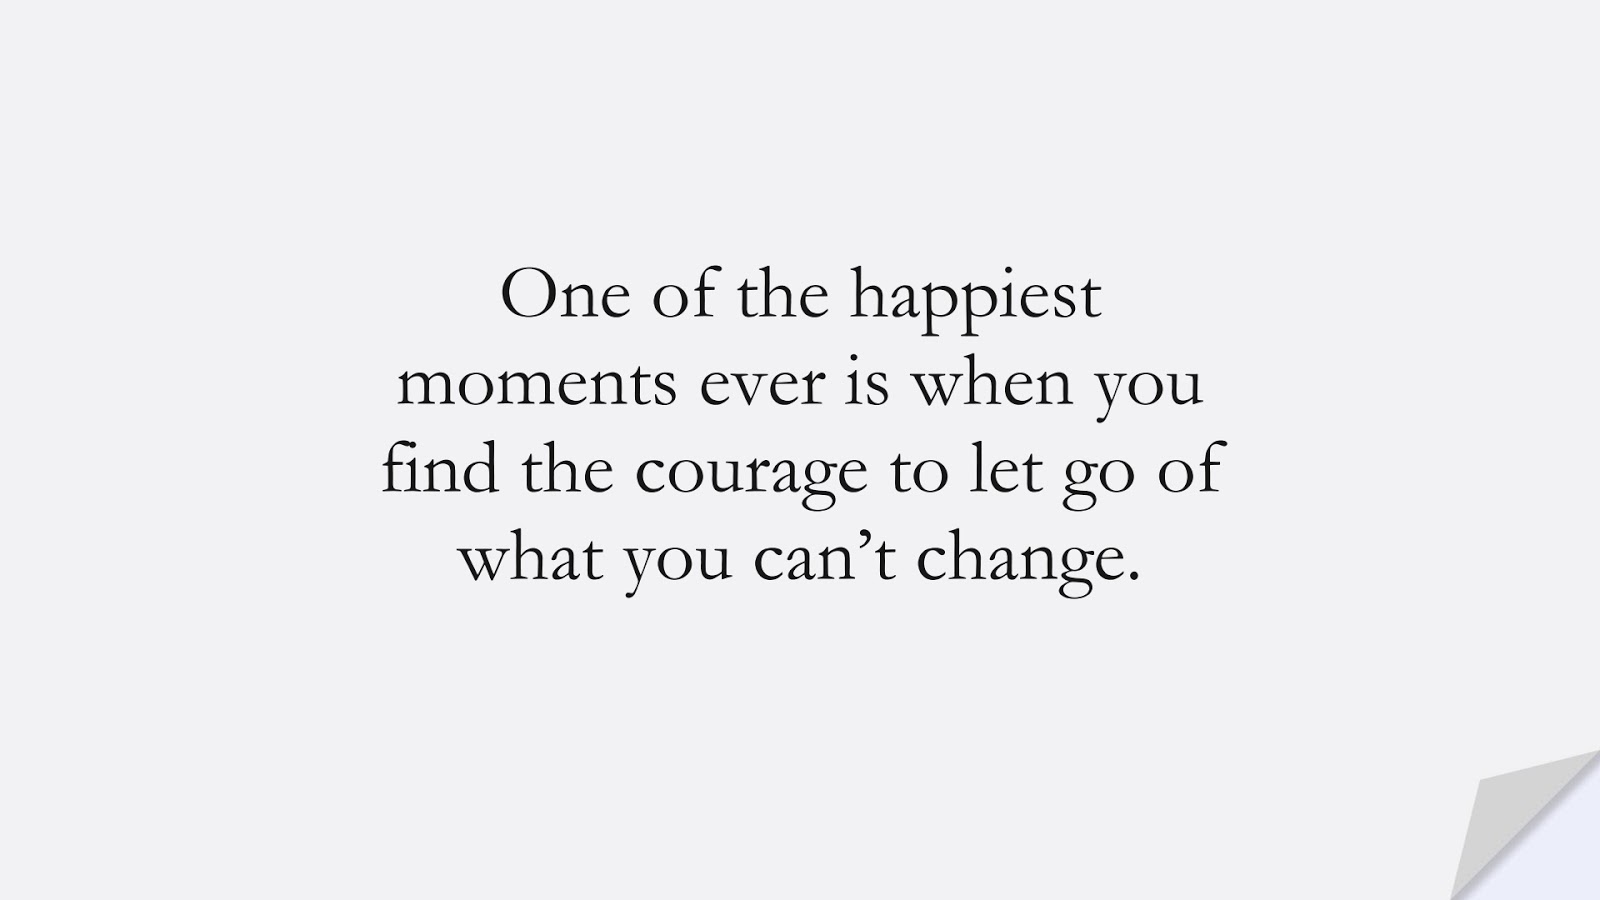 One of the happiest moments ever is when you find the courage to let go of what you can't change.FALSE